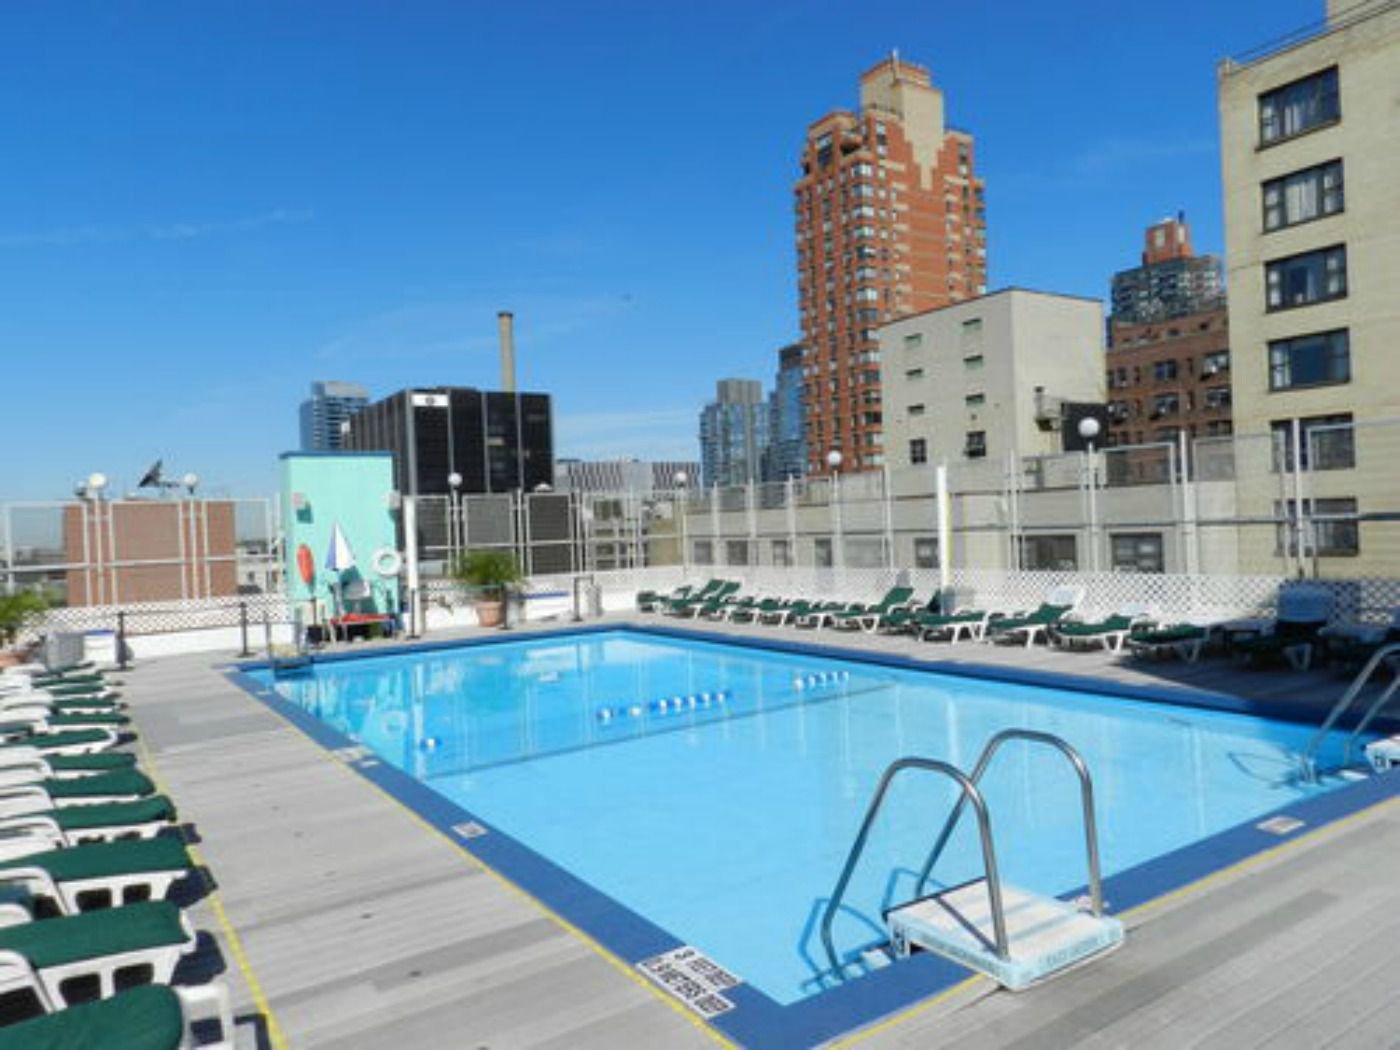 Best new york city hotels with swimming pools - Hotel new york swimming pool roof ...